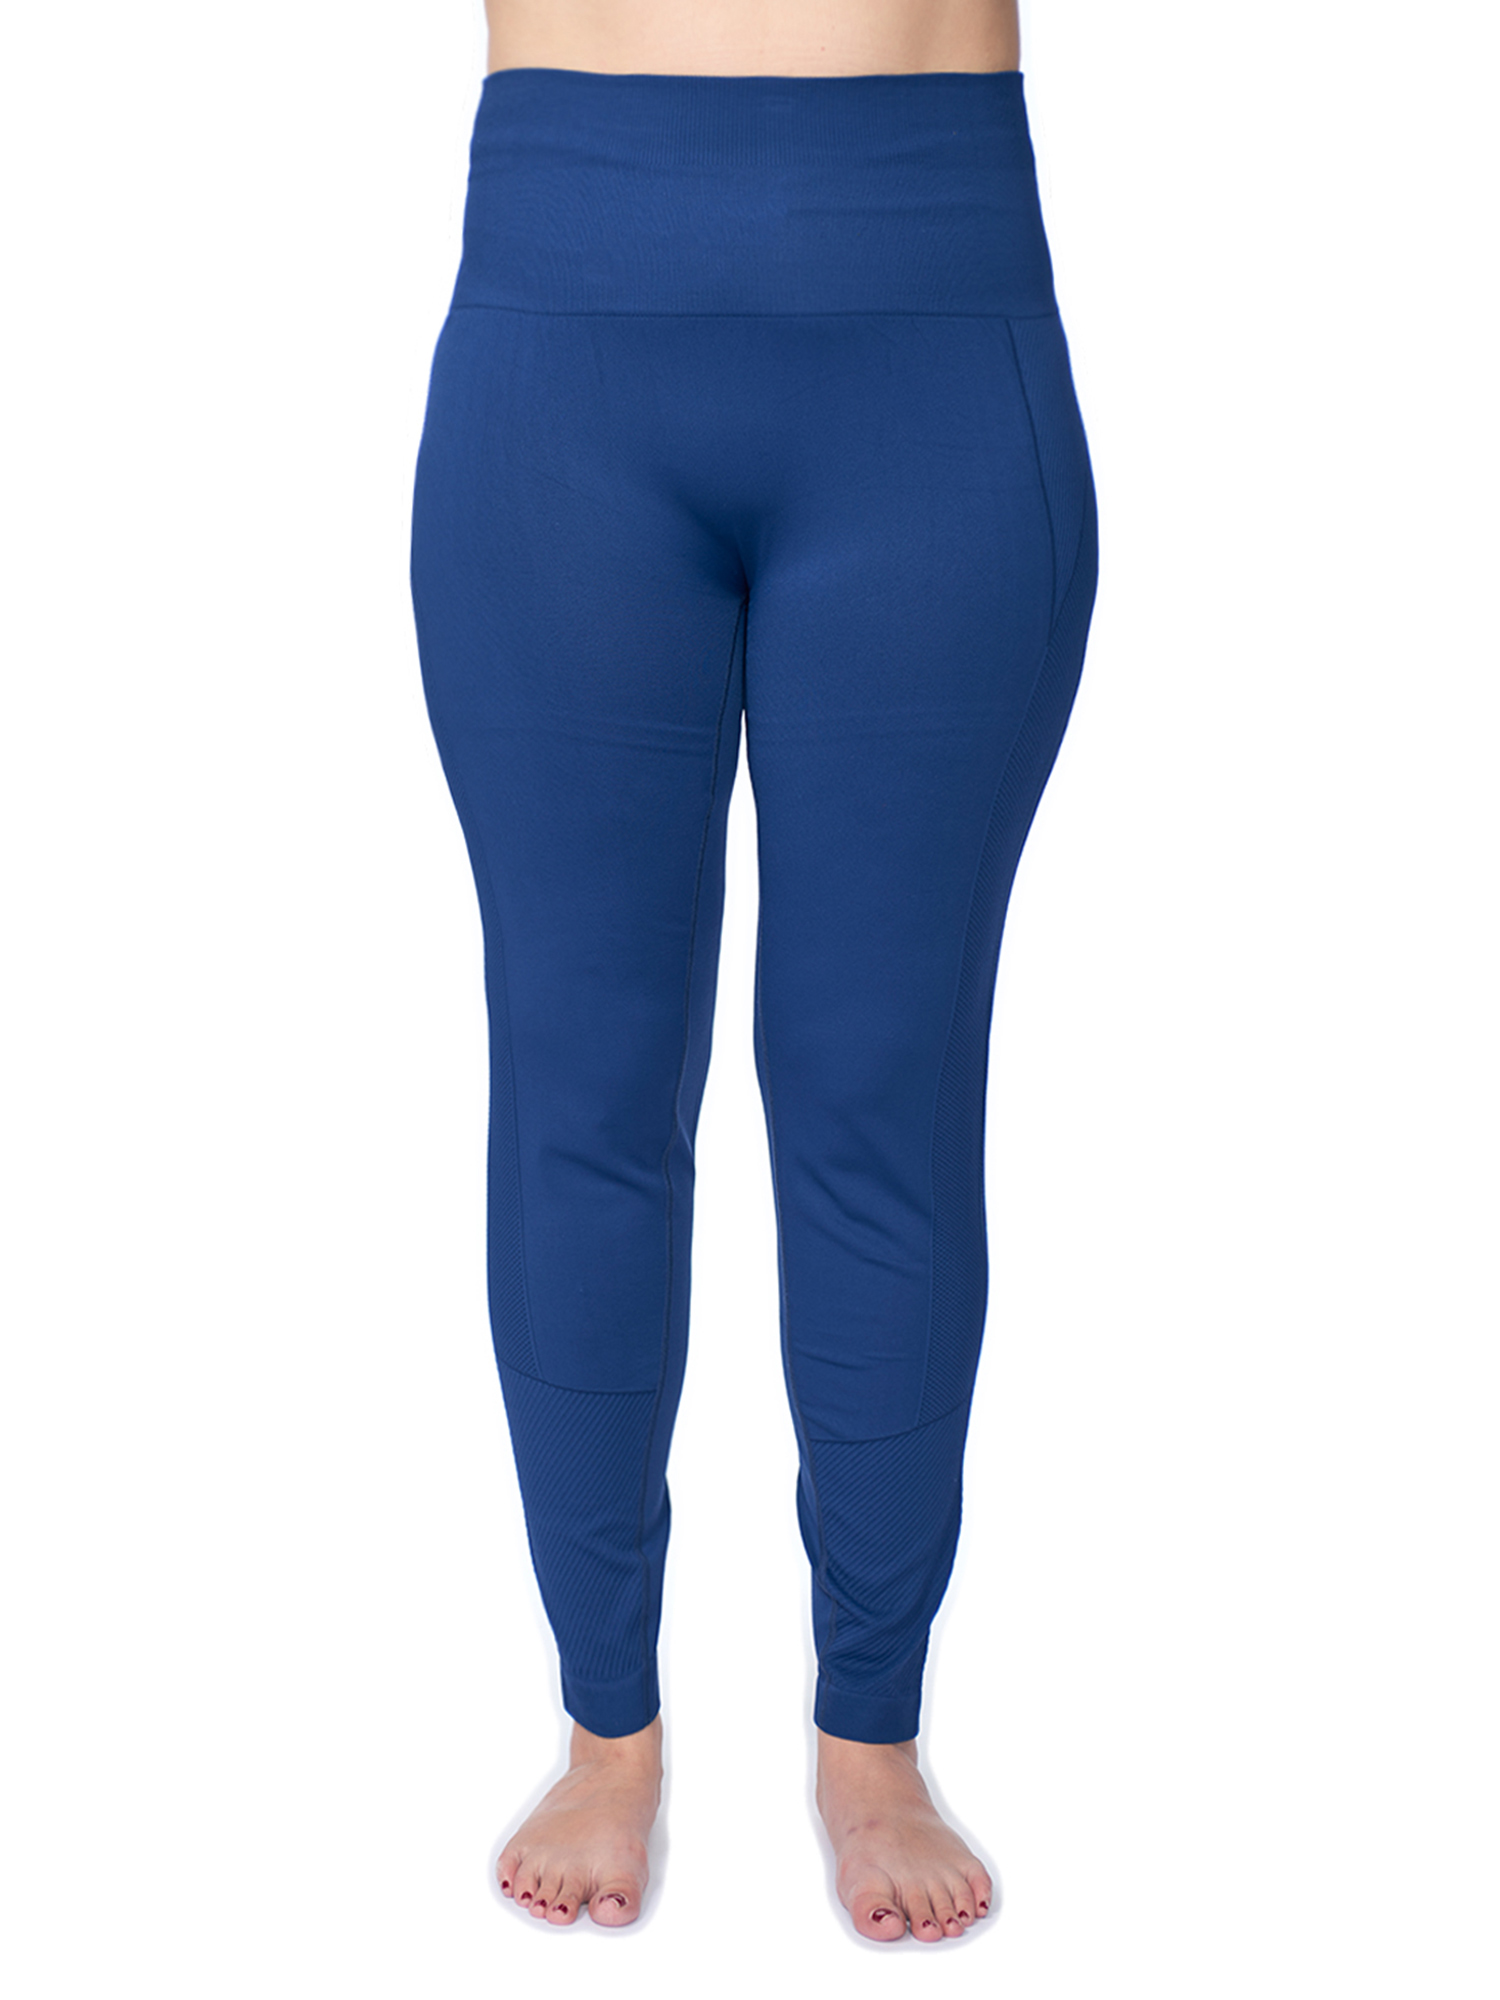 Under Control Women's Plus Active Seamless High Impact Fitness Legging with Stretch Compression and Control Waistband